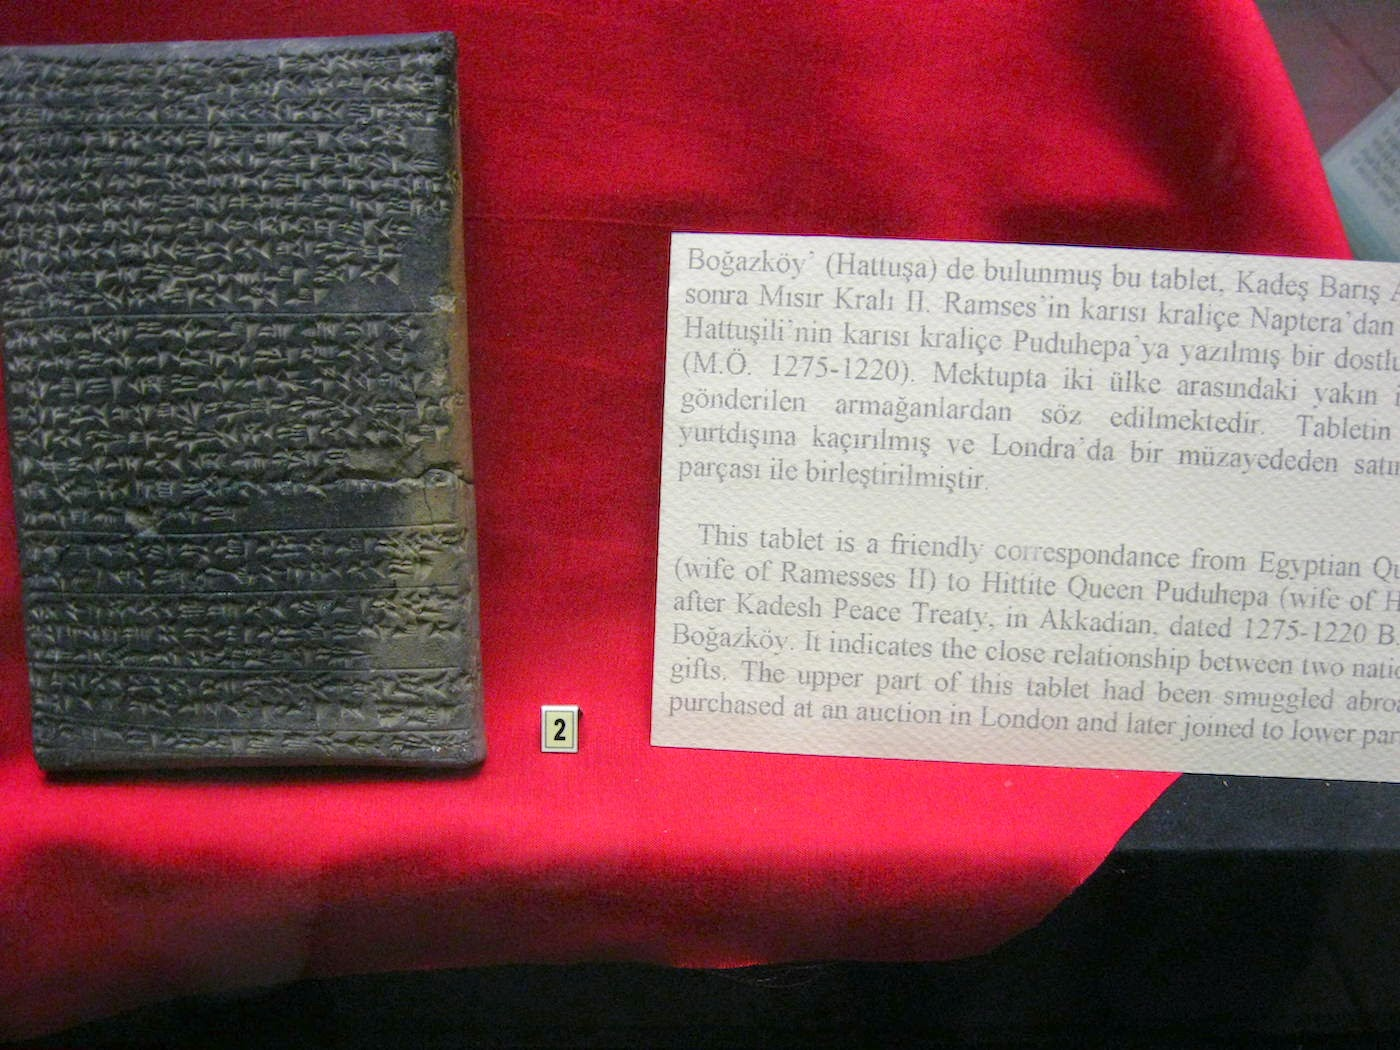 cuneiform correspondence from Egyptian Queen to Hittite Queen Puduhepa